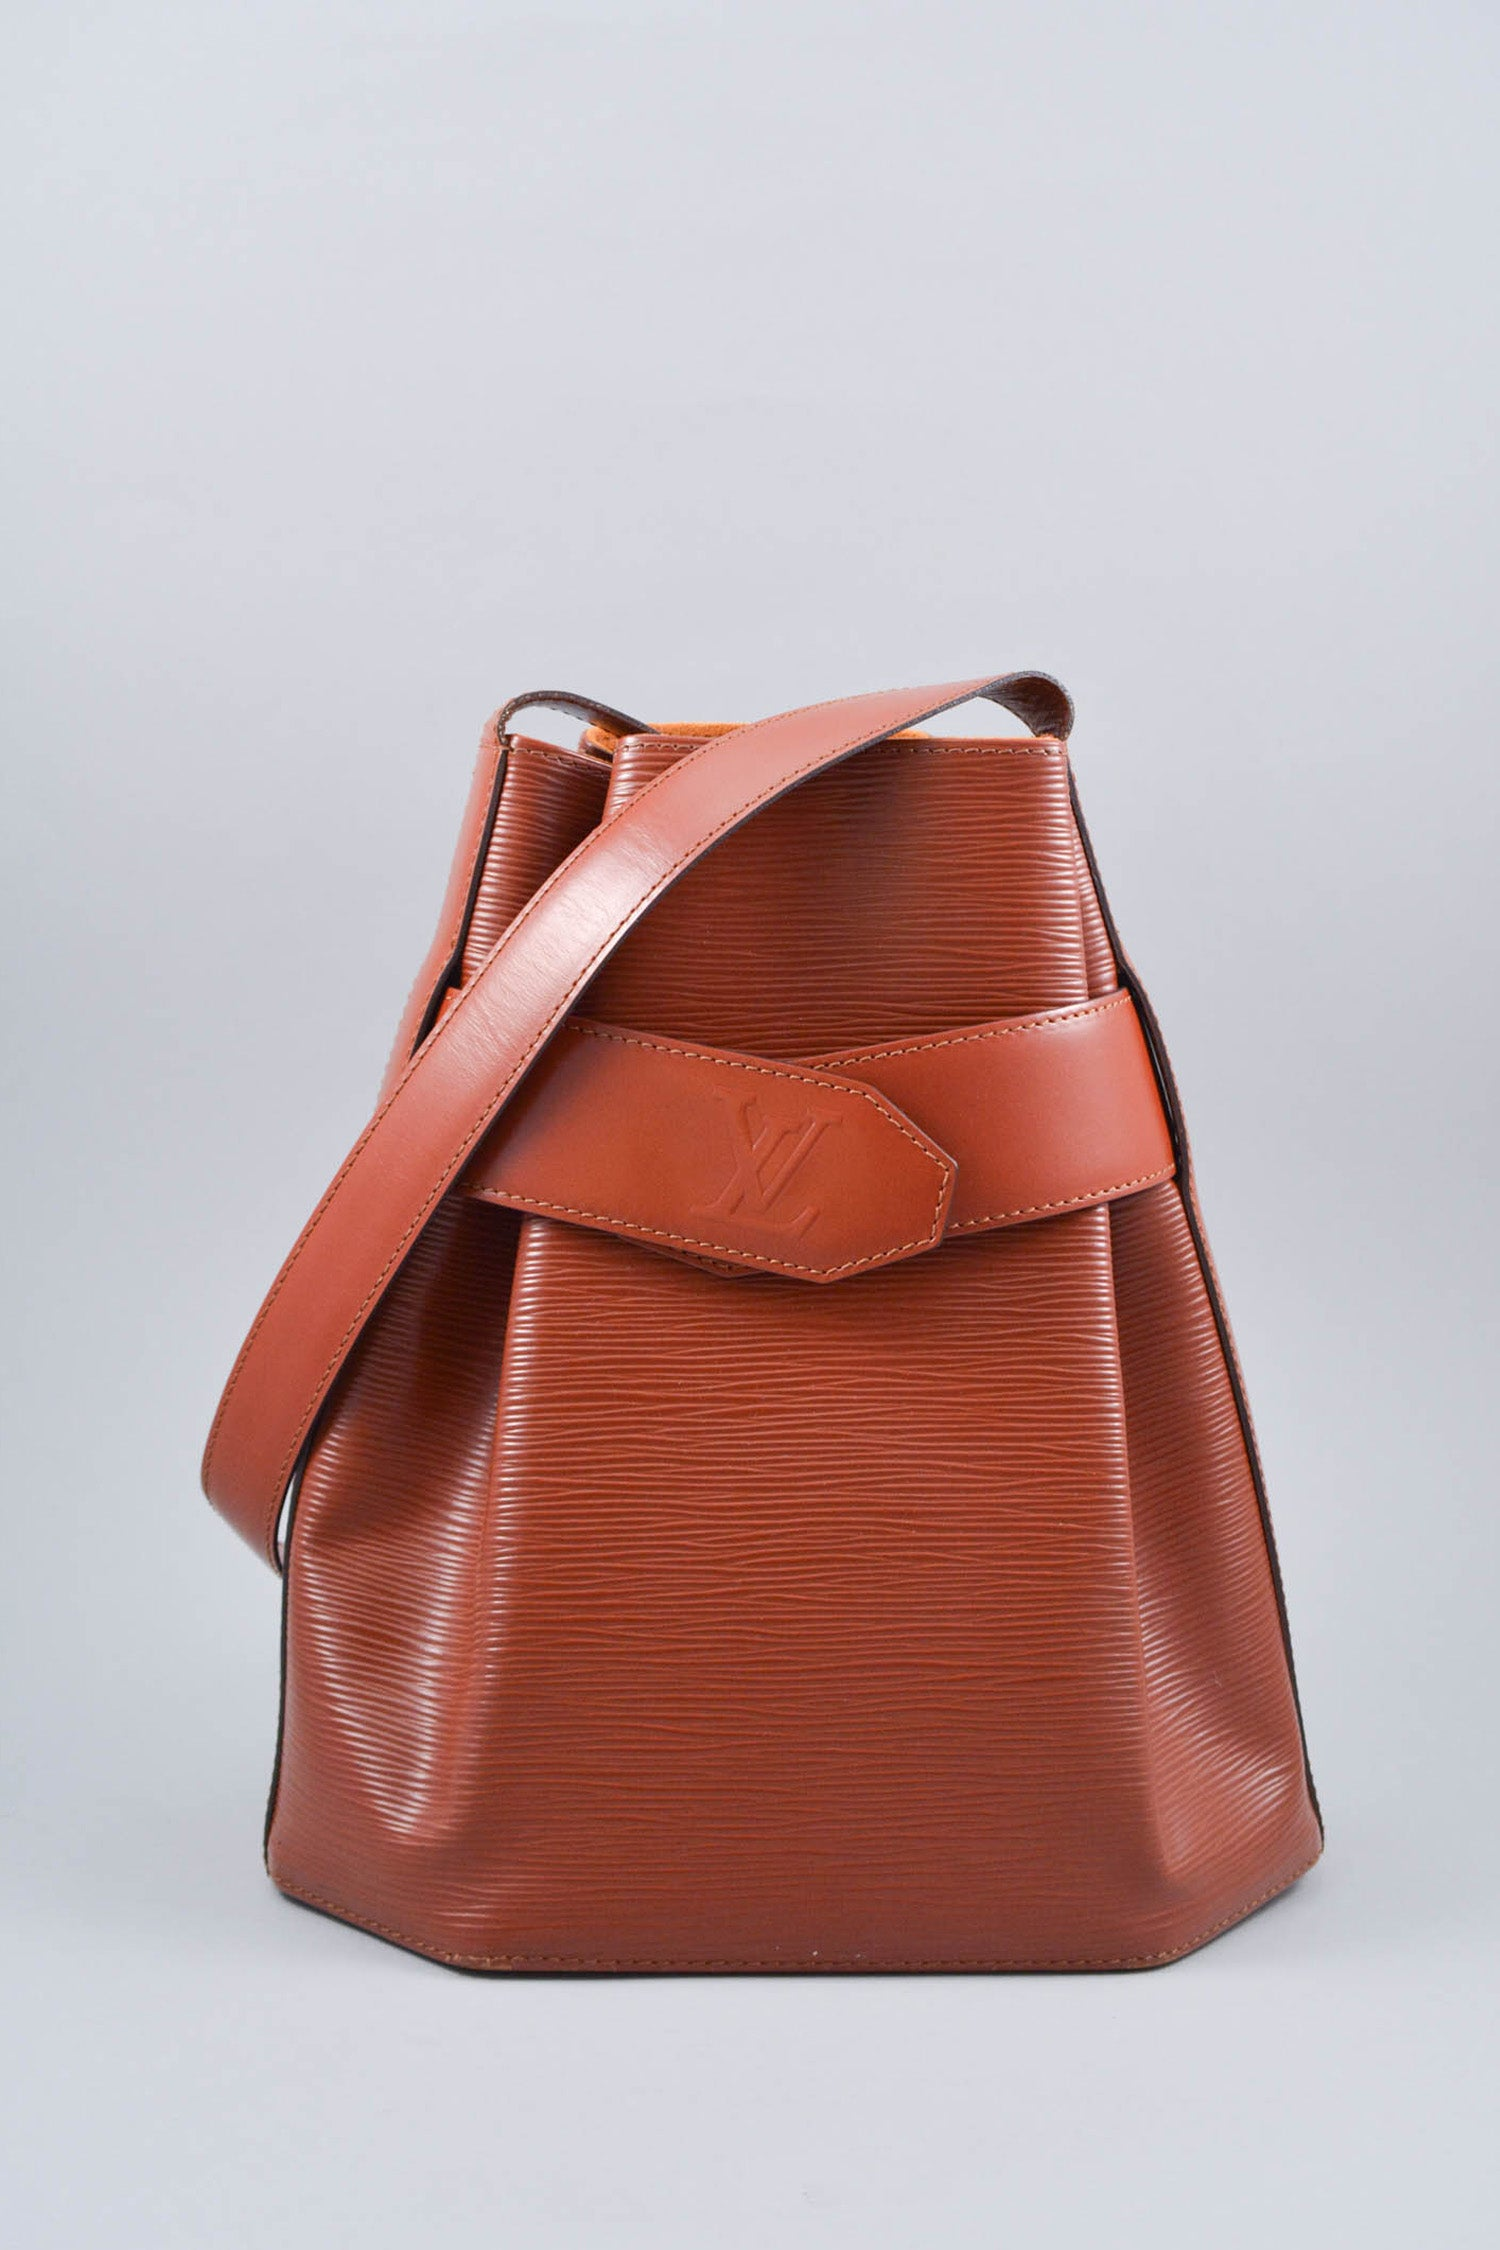 Louis Vuitton Burnt Orange Epi Sac d'Epaule Shoulder Bag